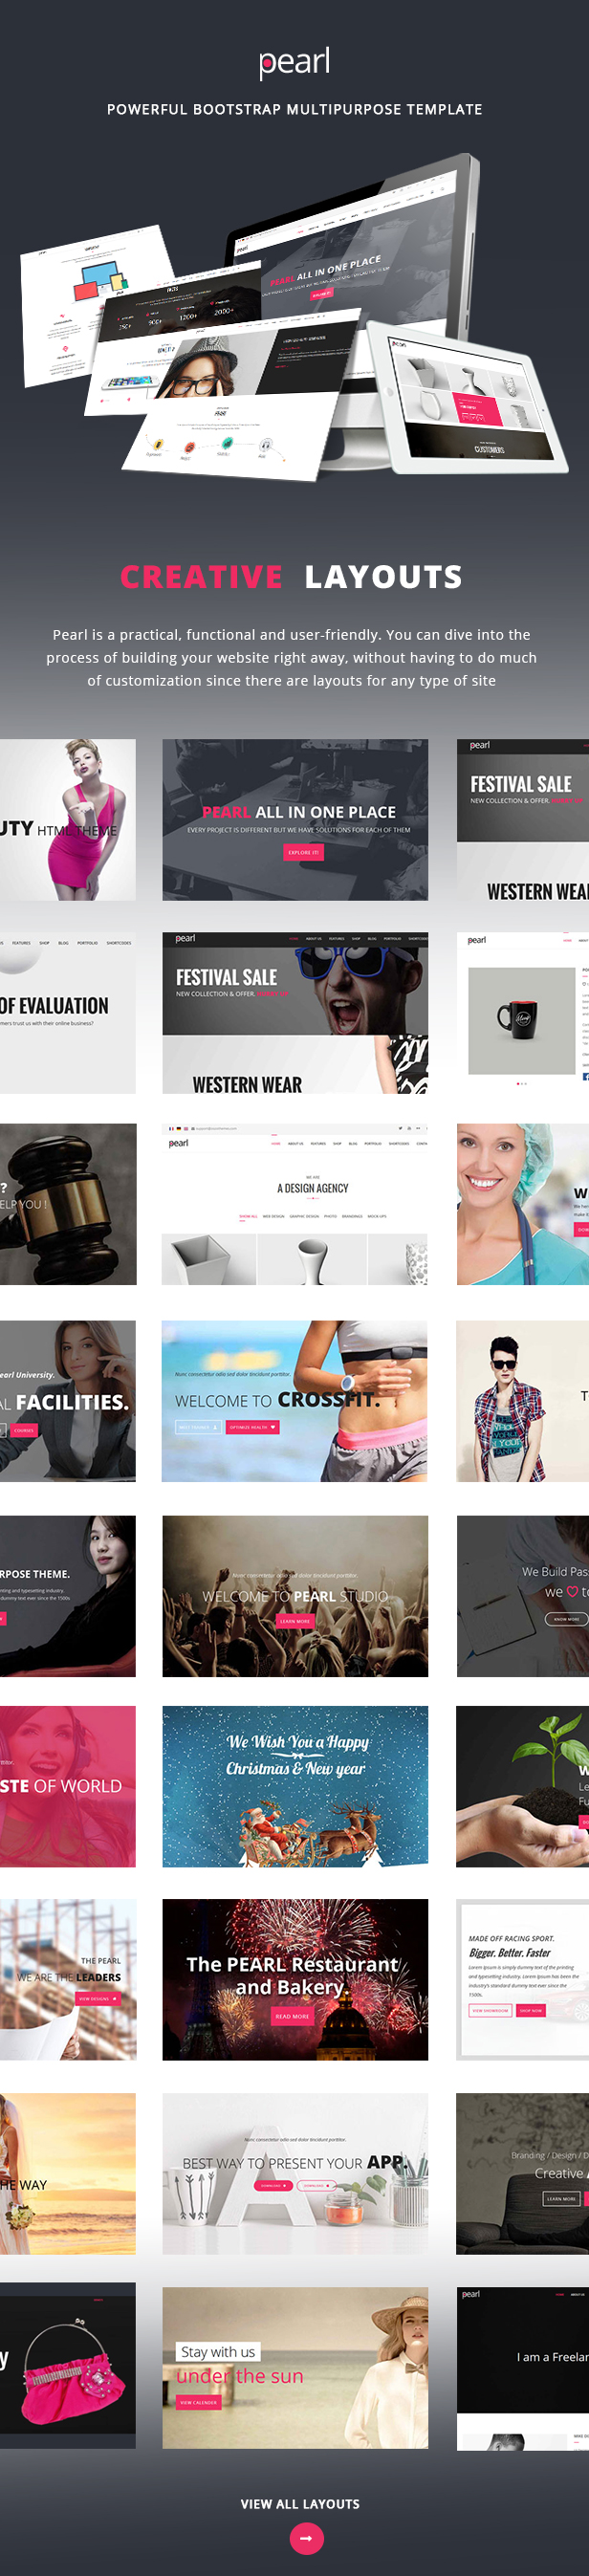 Pearl | Multi-Purpose HTML5 Responsive Template